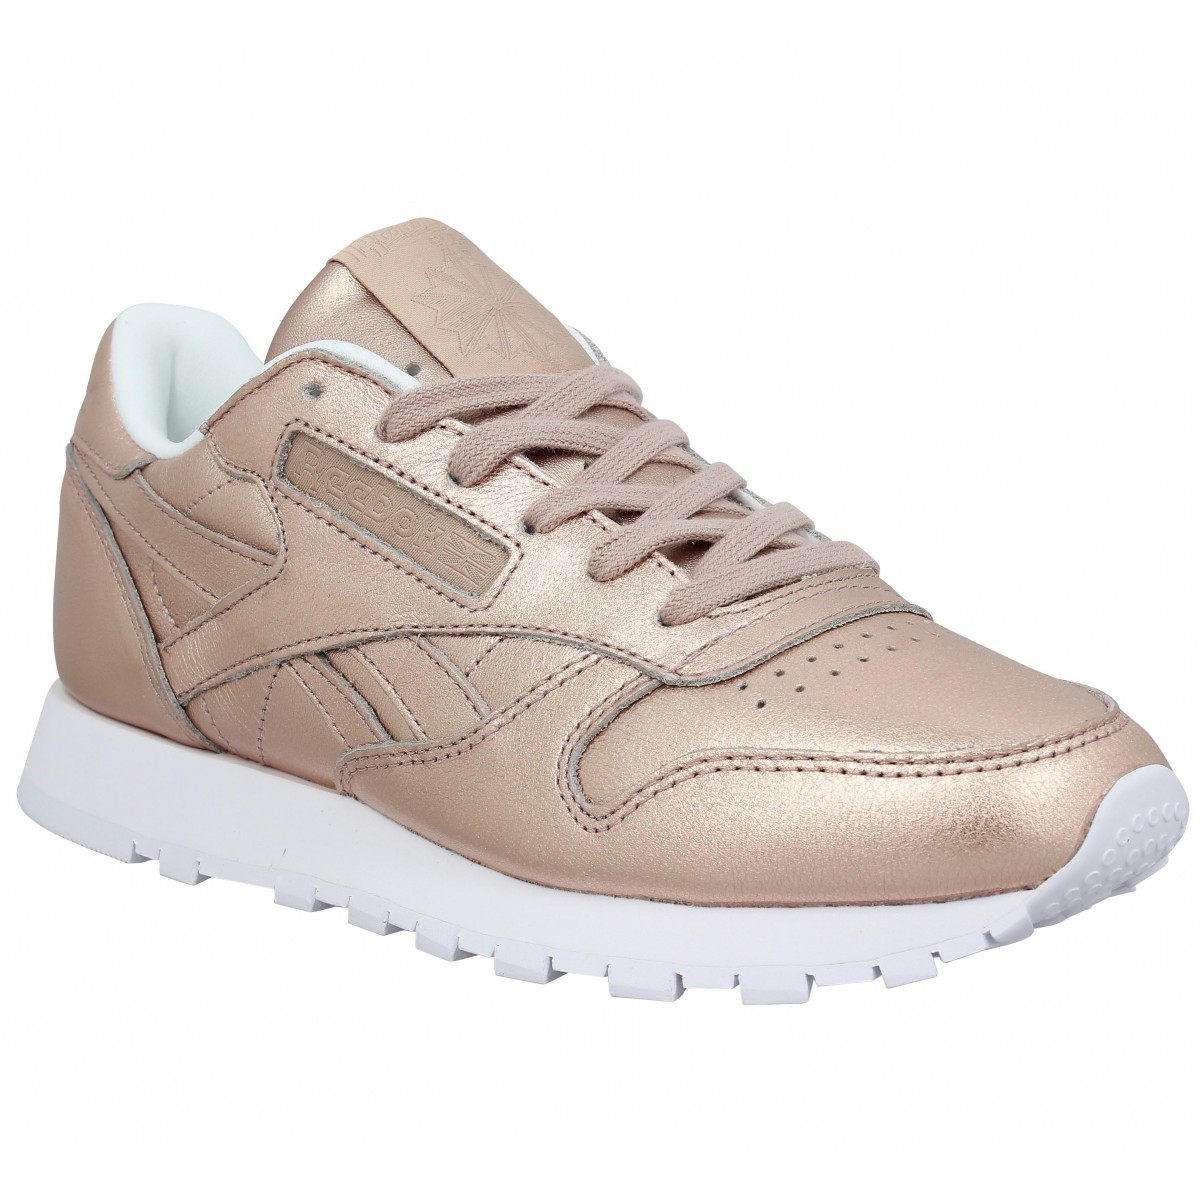 soldes reebok classic leather metal cuir femme peach femme fanny chaussures. Black Bedroom Furniture Sets. Home Design Ideas